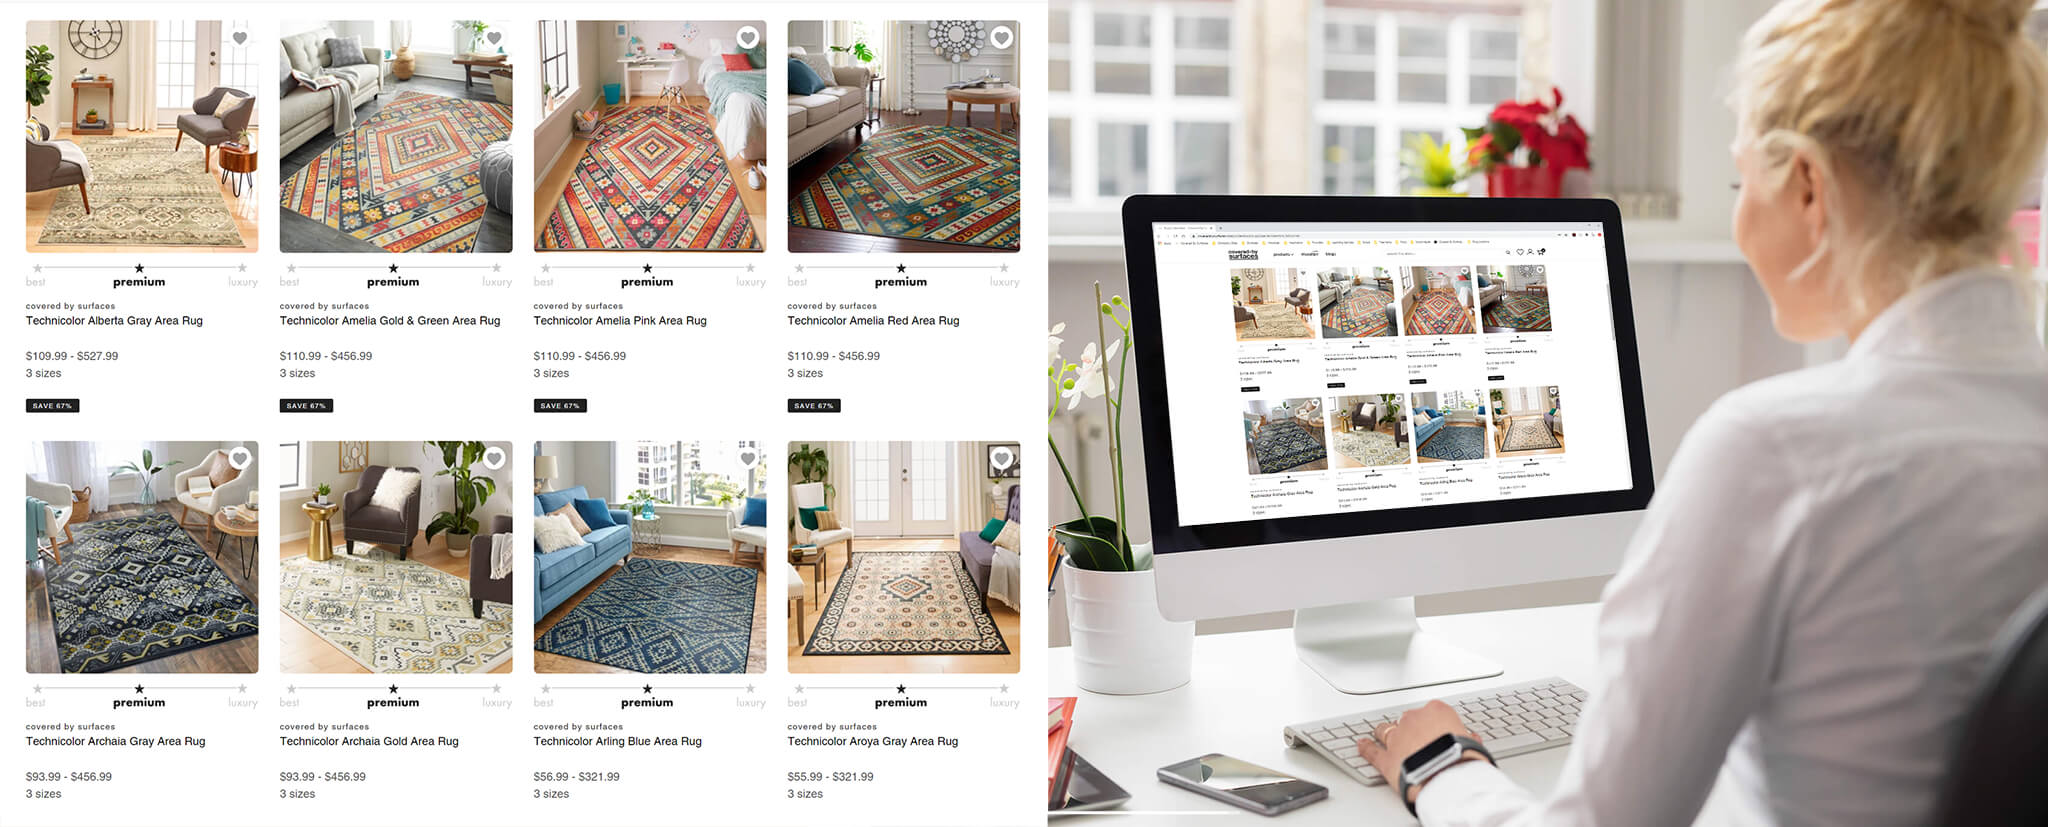 Browsing Covered by Surfaces